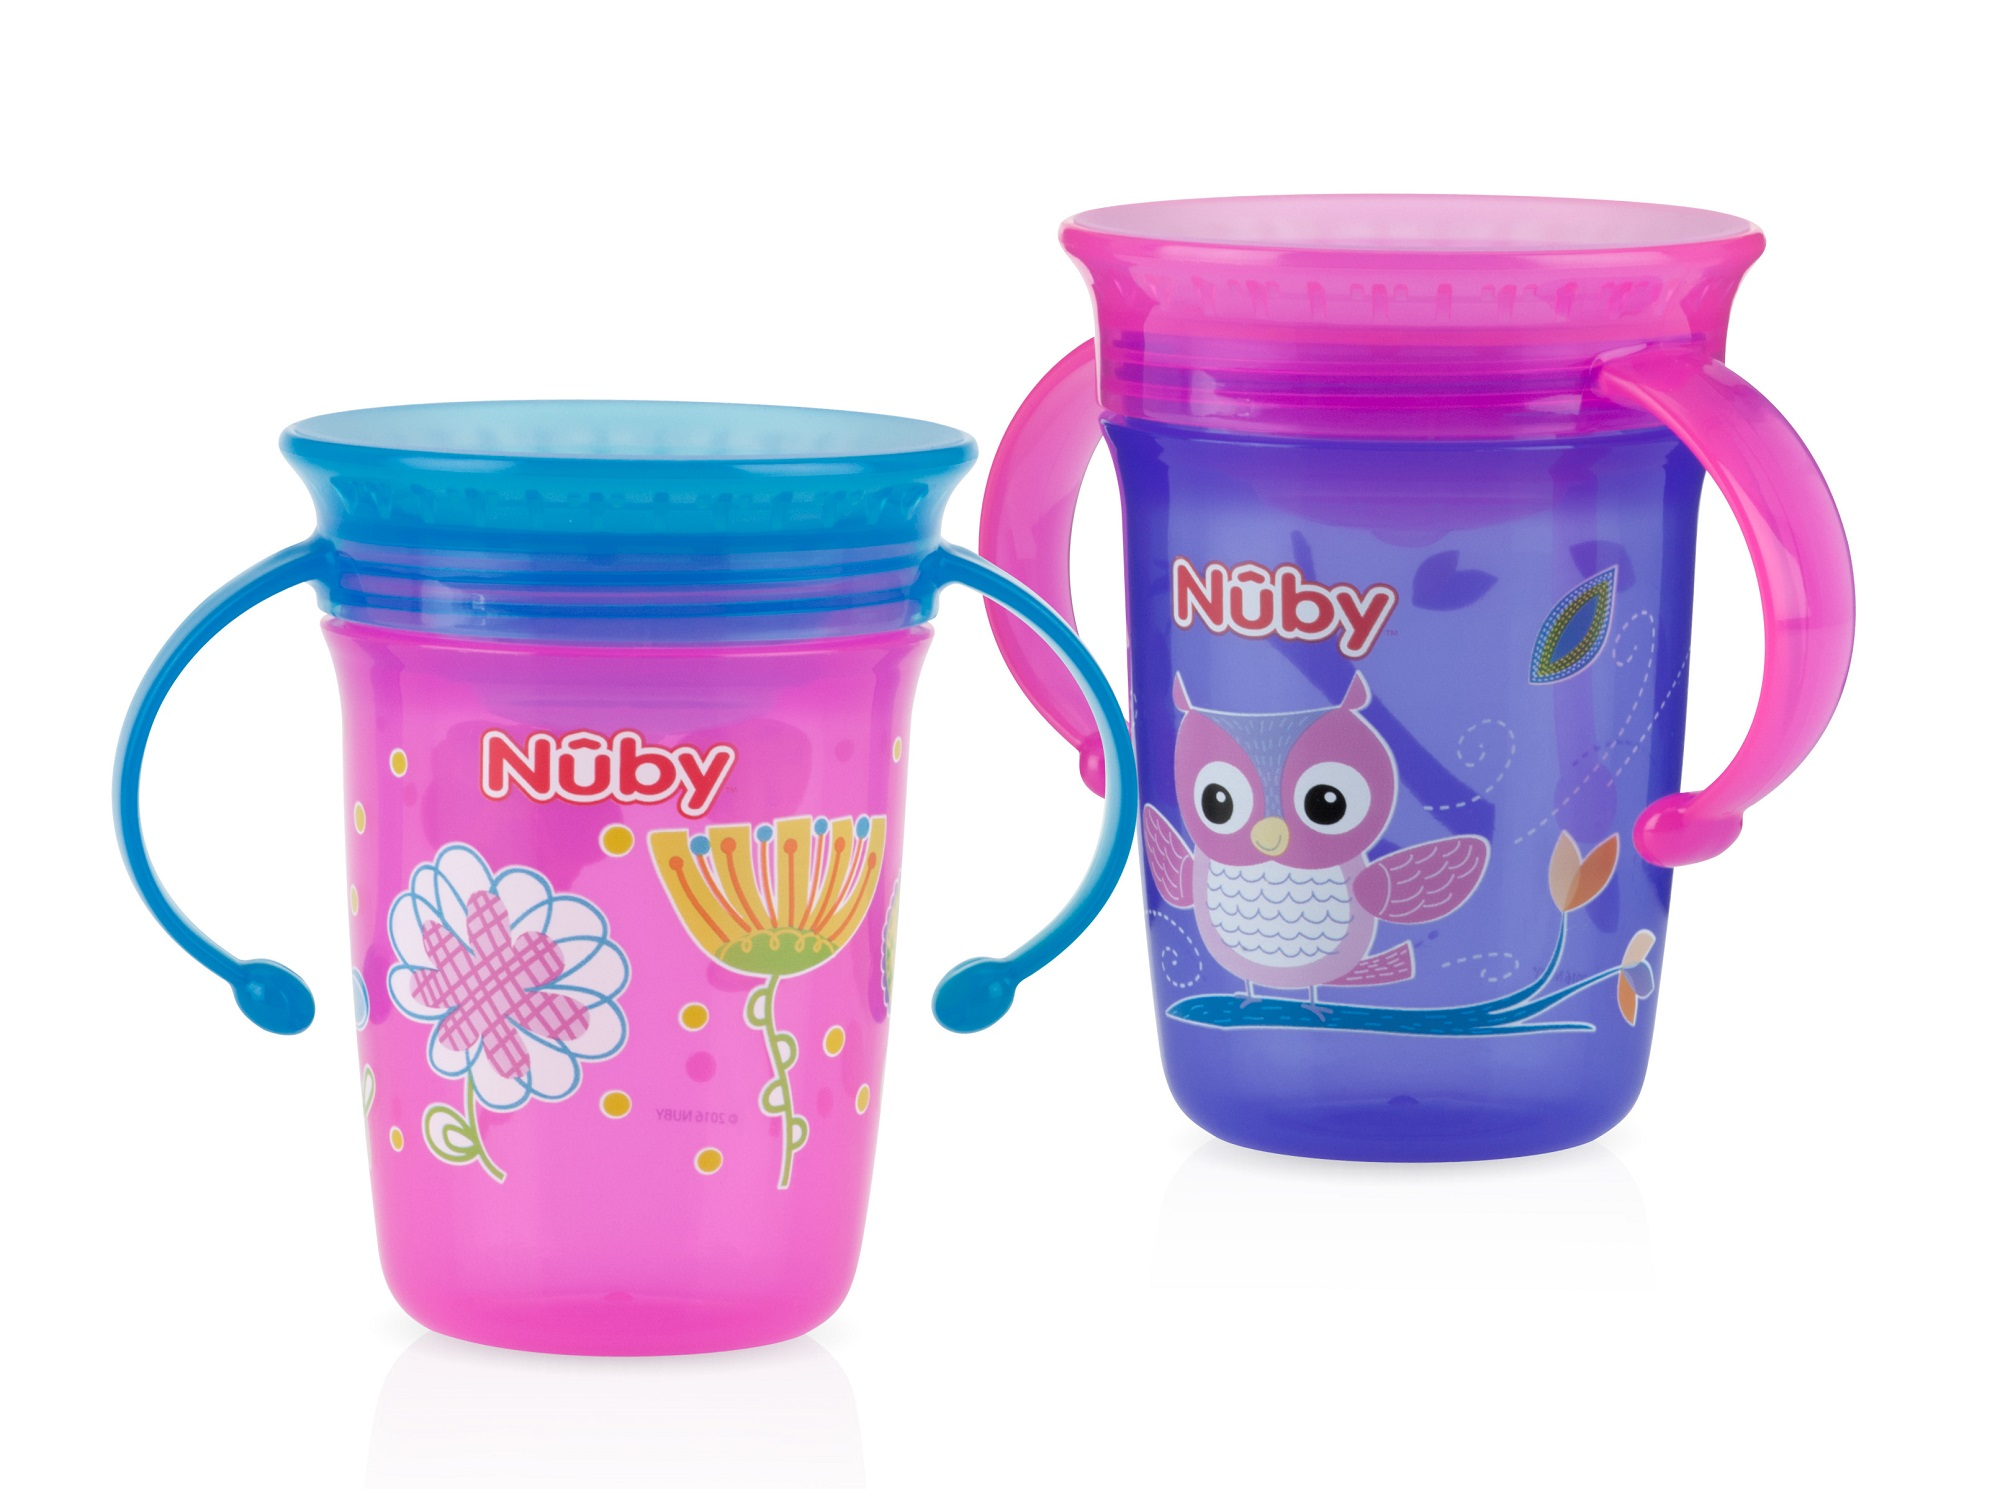 Nuby 360 Wonder Spoutless Trainer Sippy Cup 2 pack by Nuby